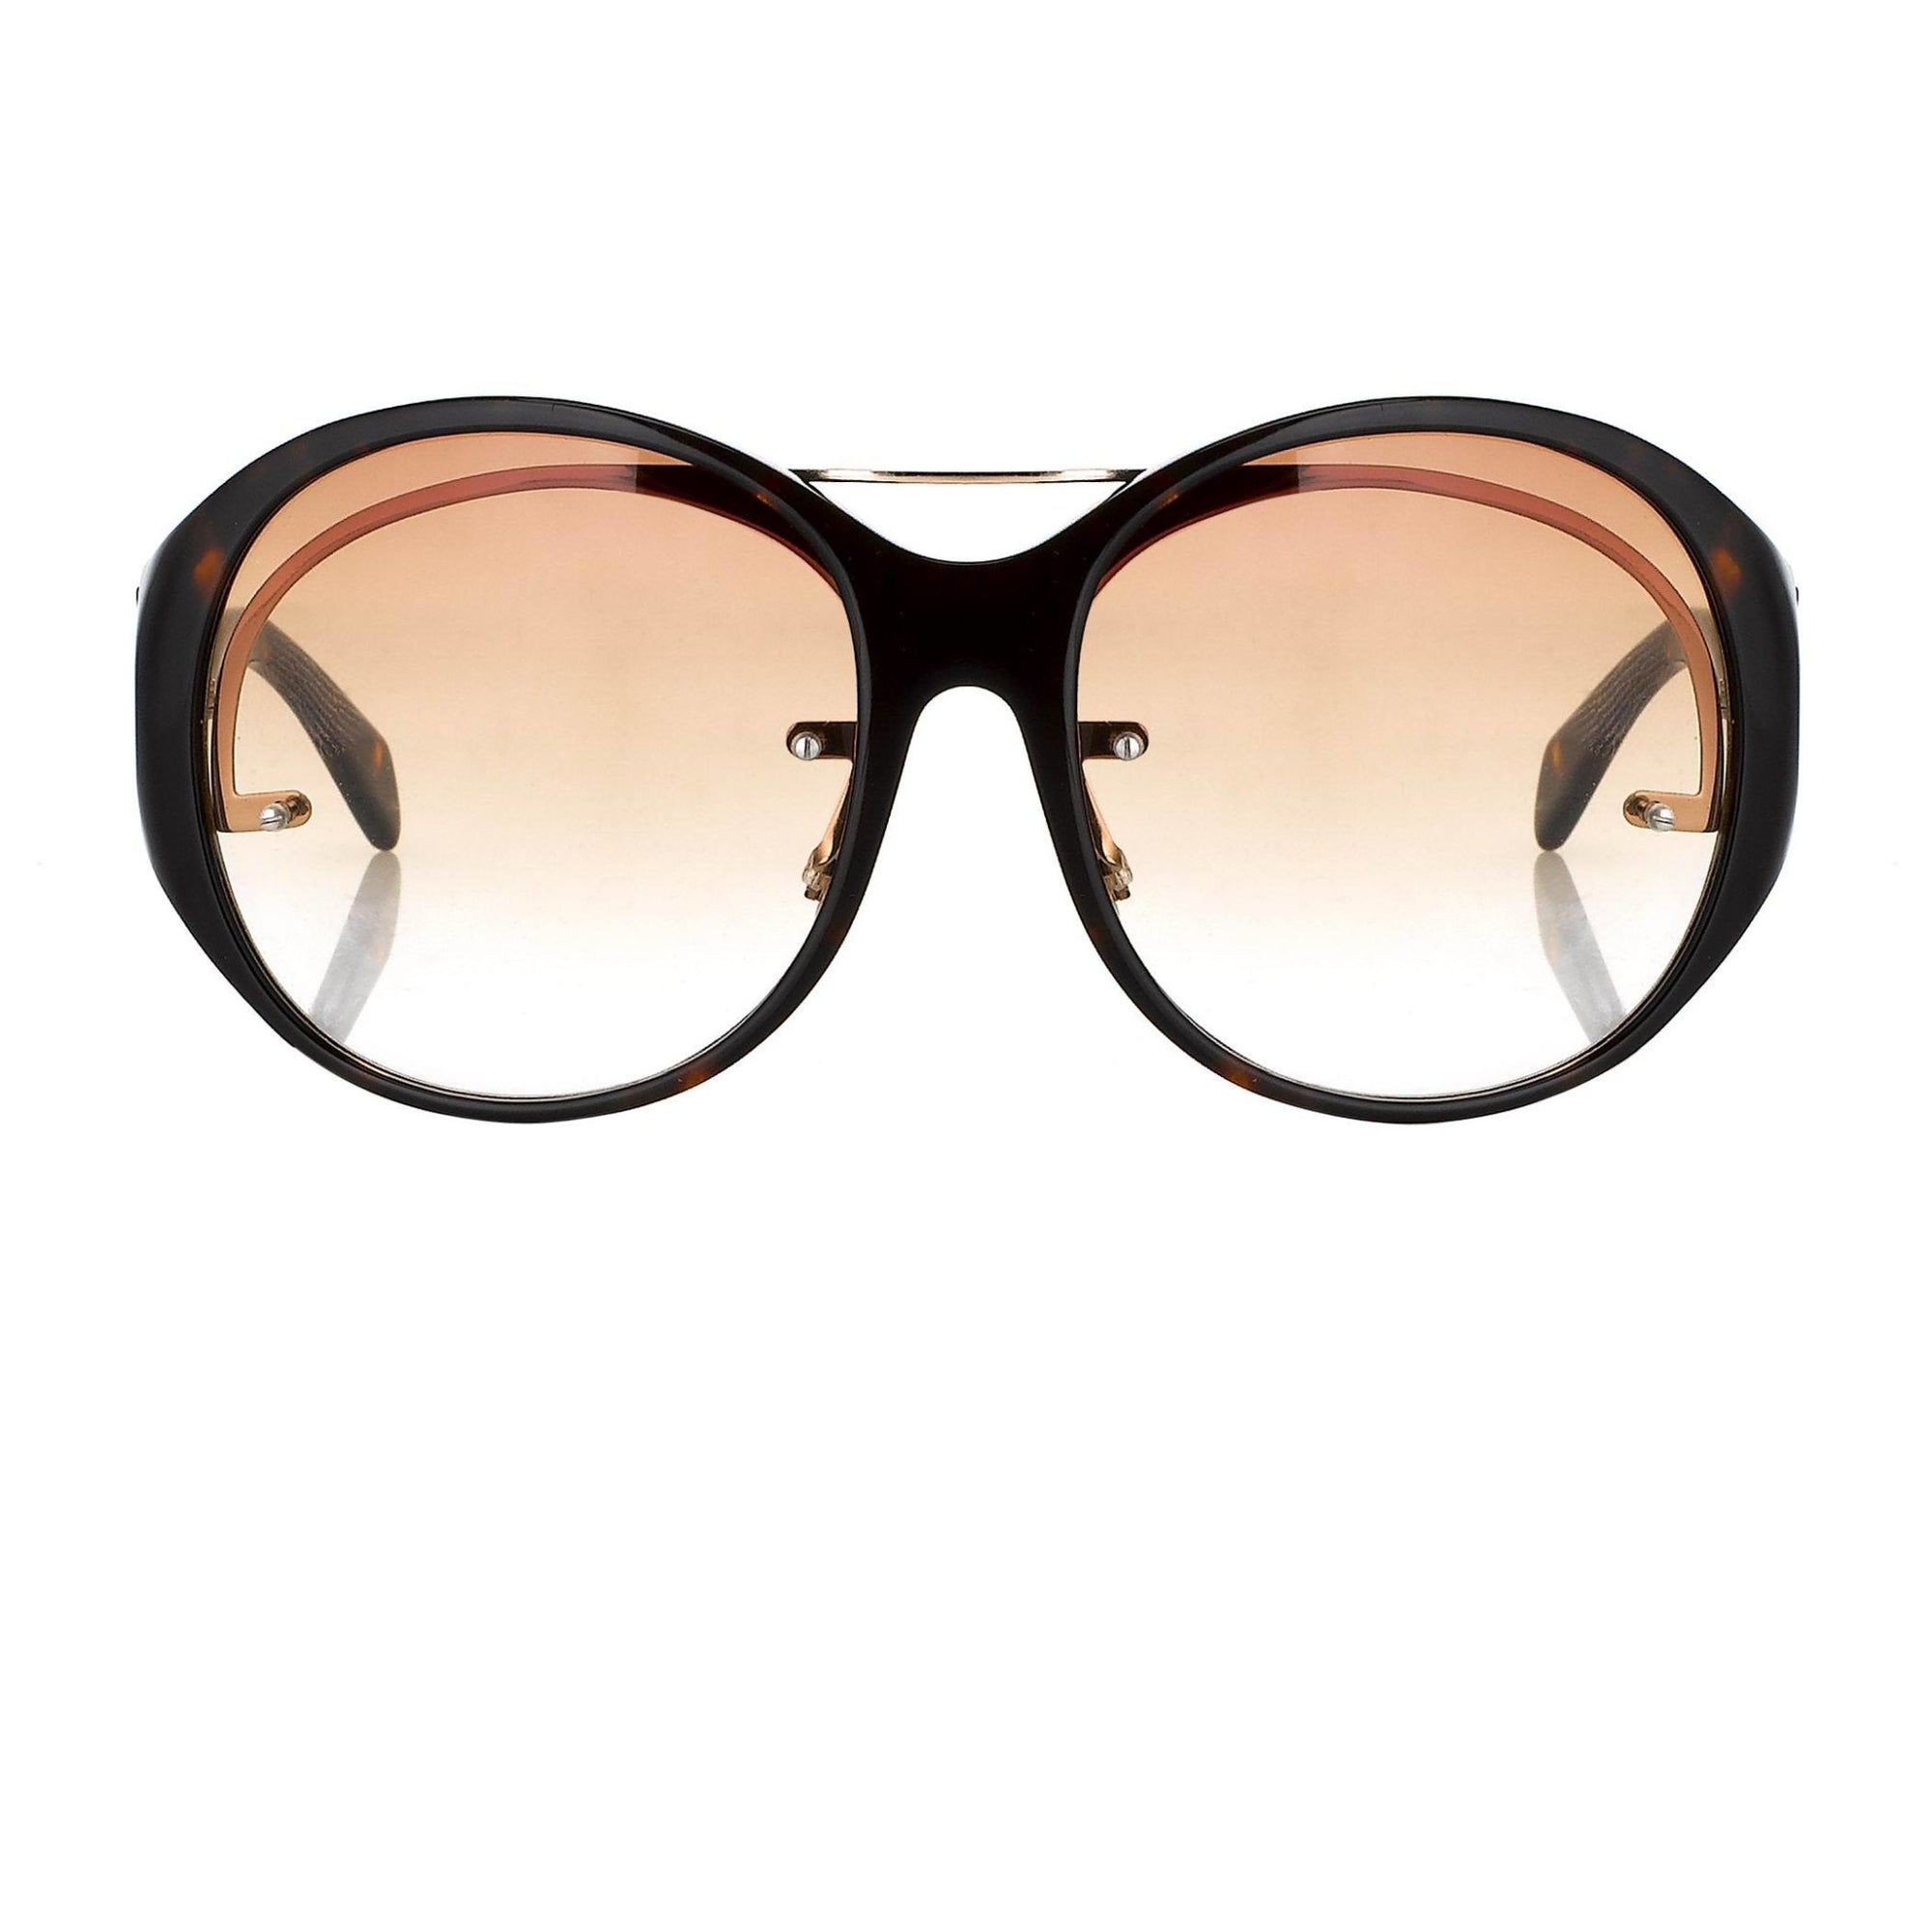 Jens Laugesen Women Sunglasses Oversized Tortoise Shell Gold With Brown Graduated Lenses 9JL1C1TSHELL - Watches & Crystals